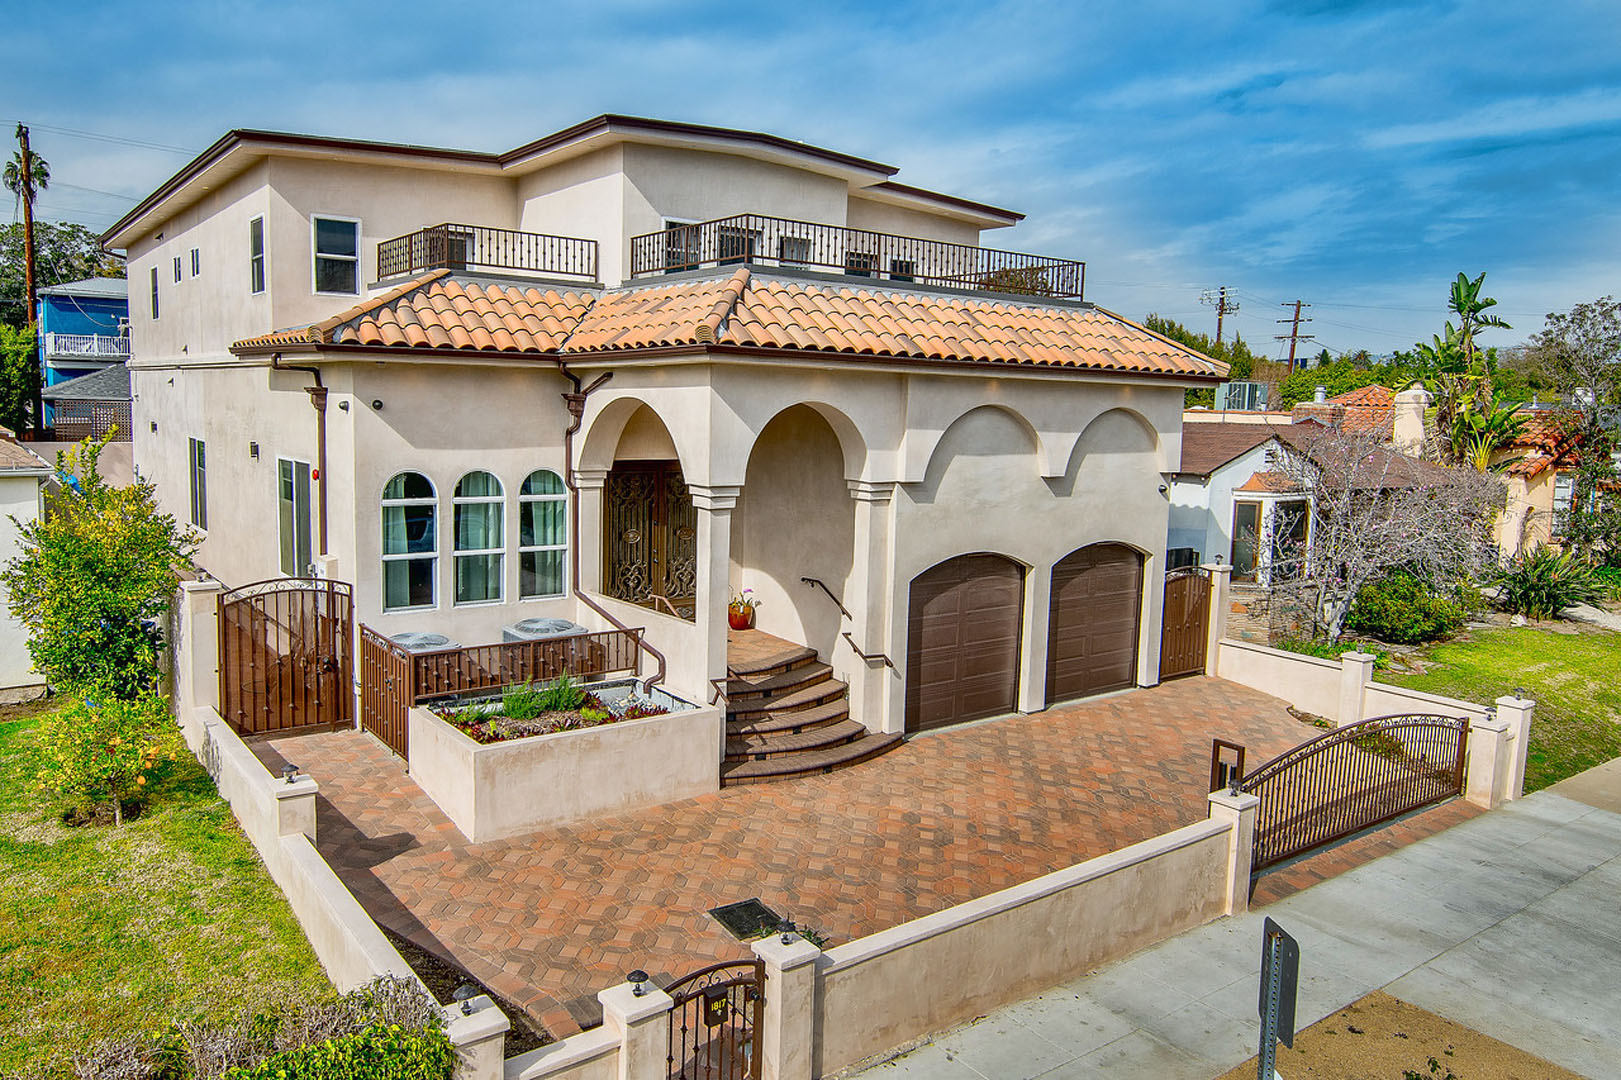 1817 South WOOSTER Street ,Los Angeles (City), CA 90035